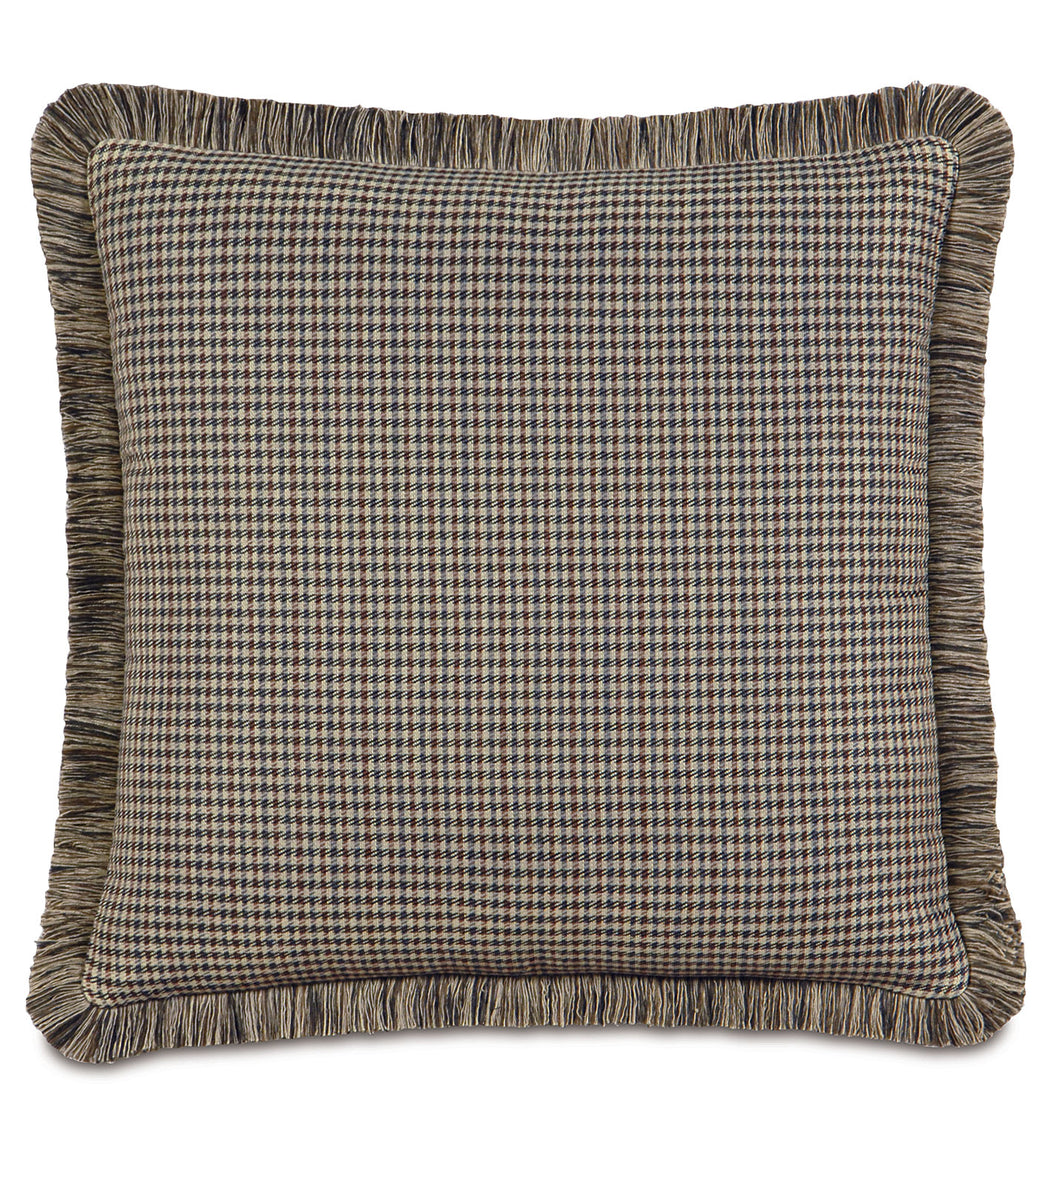 Mocha Lodge Houndstooth Euro Sham With Brush Fringe 27